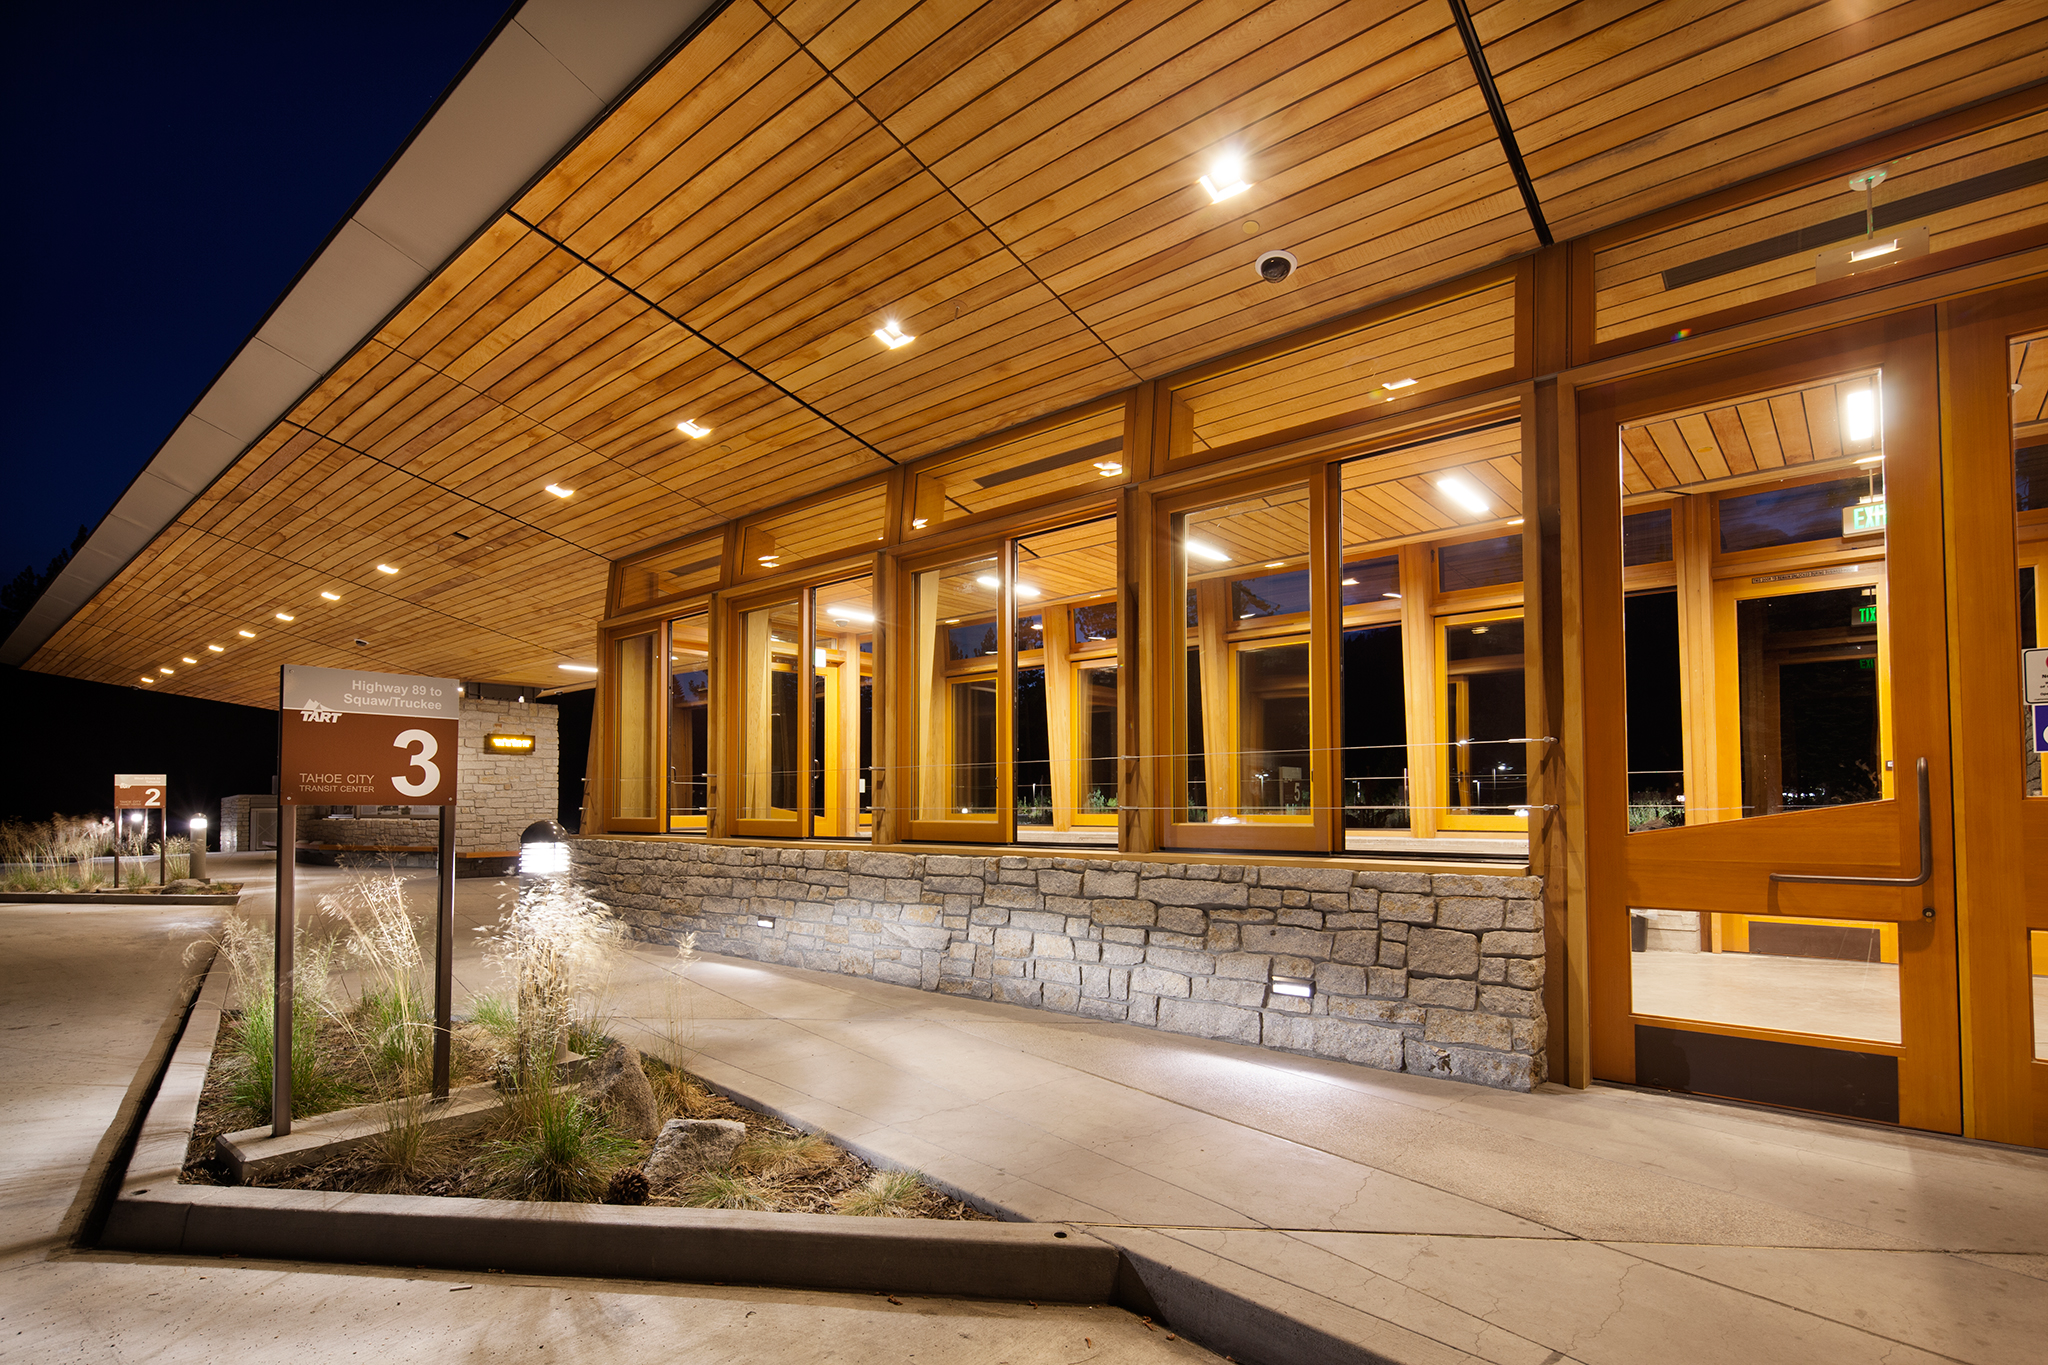 Tahoe city transit architect magazine wrns studio for Tahoe architects